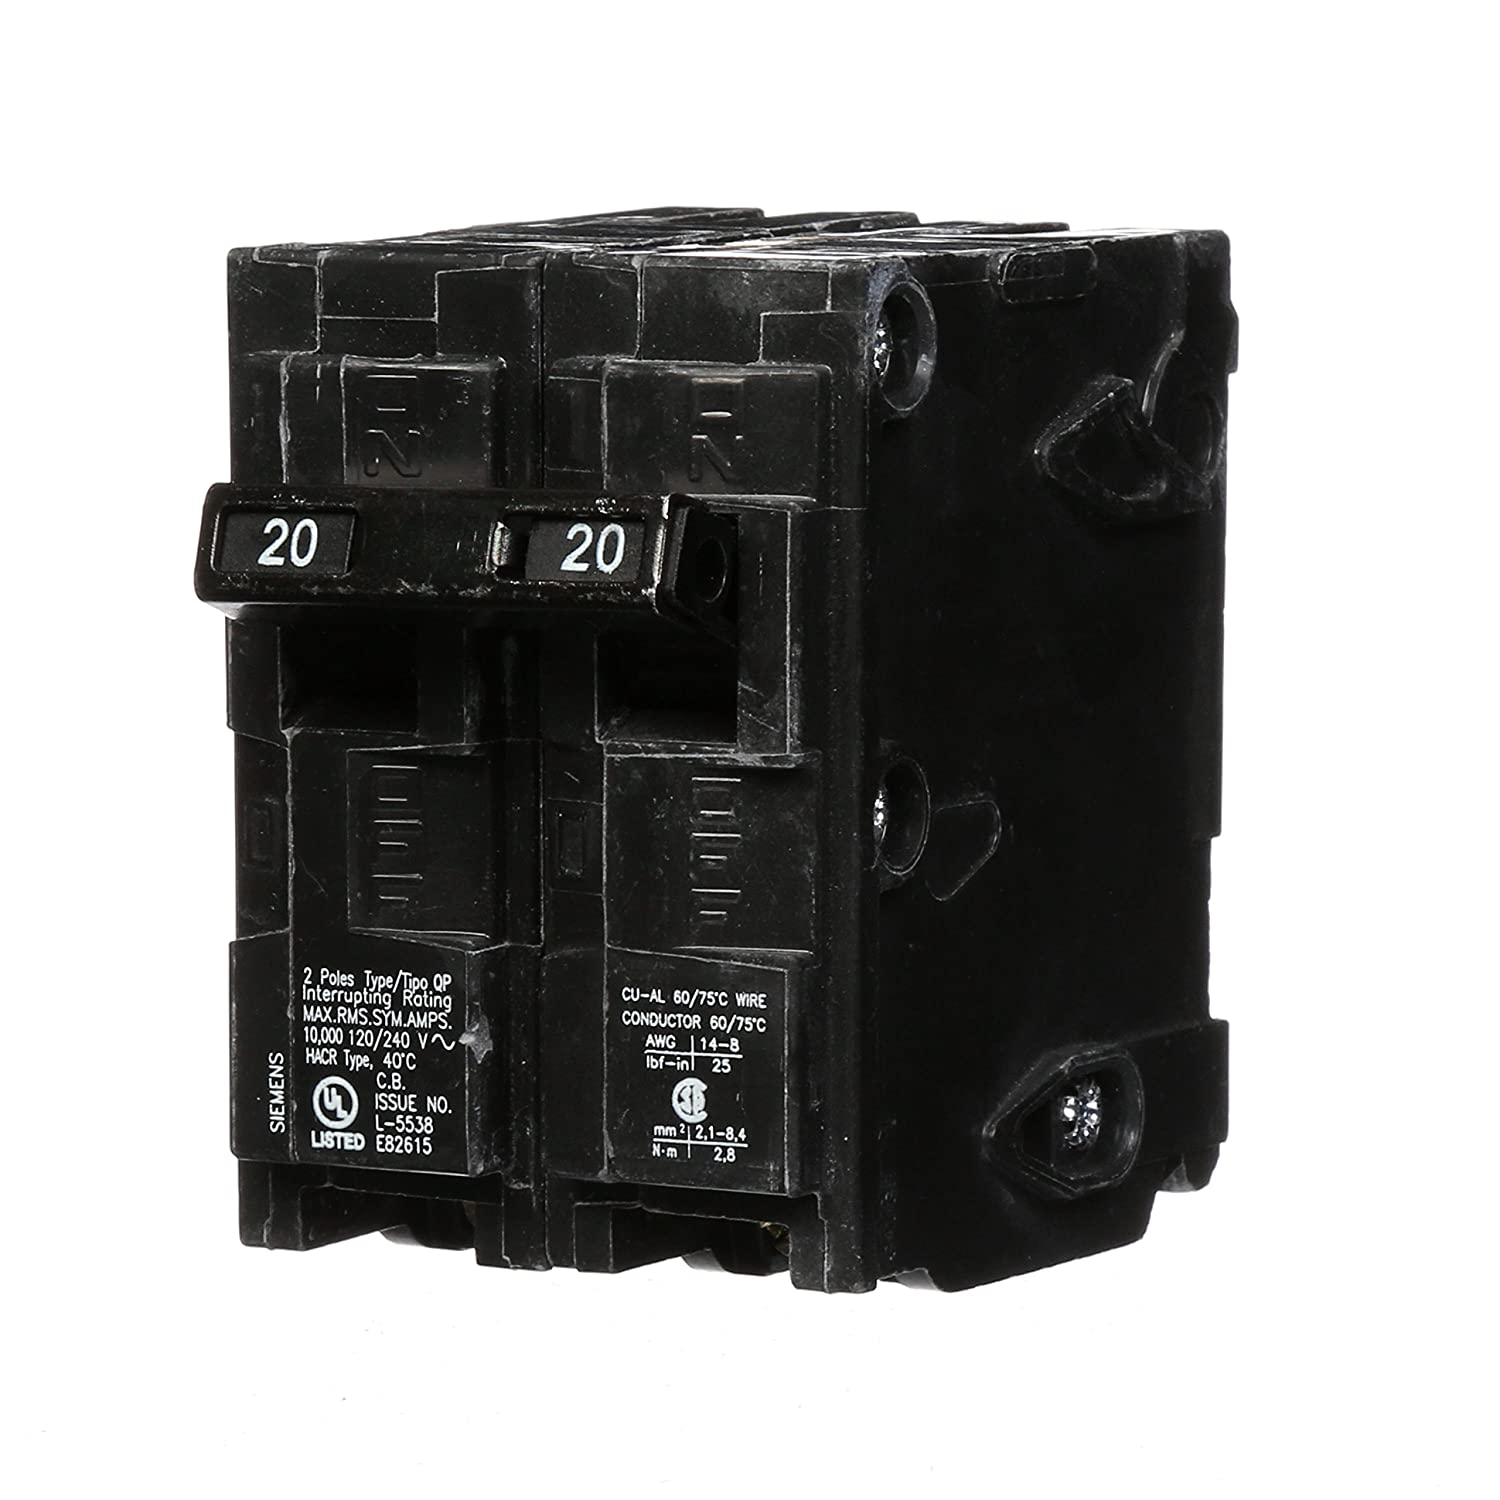 Q220 20 Amp Double Pole Type Qp Circuit Breaker Amazoncom